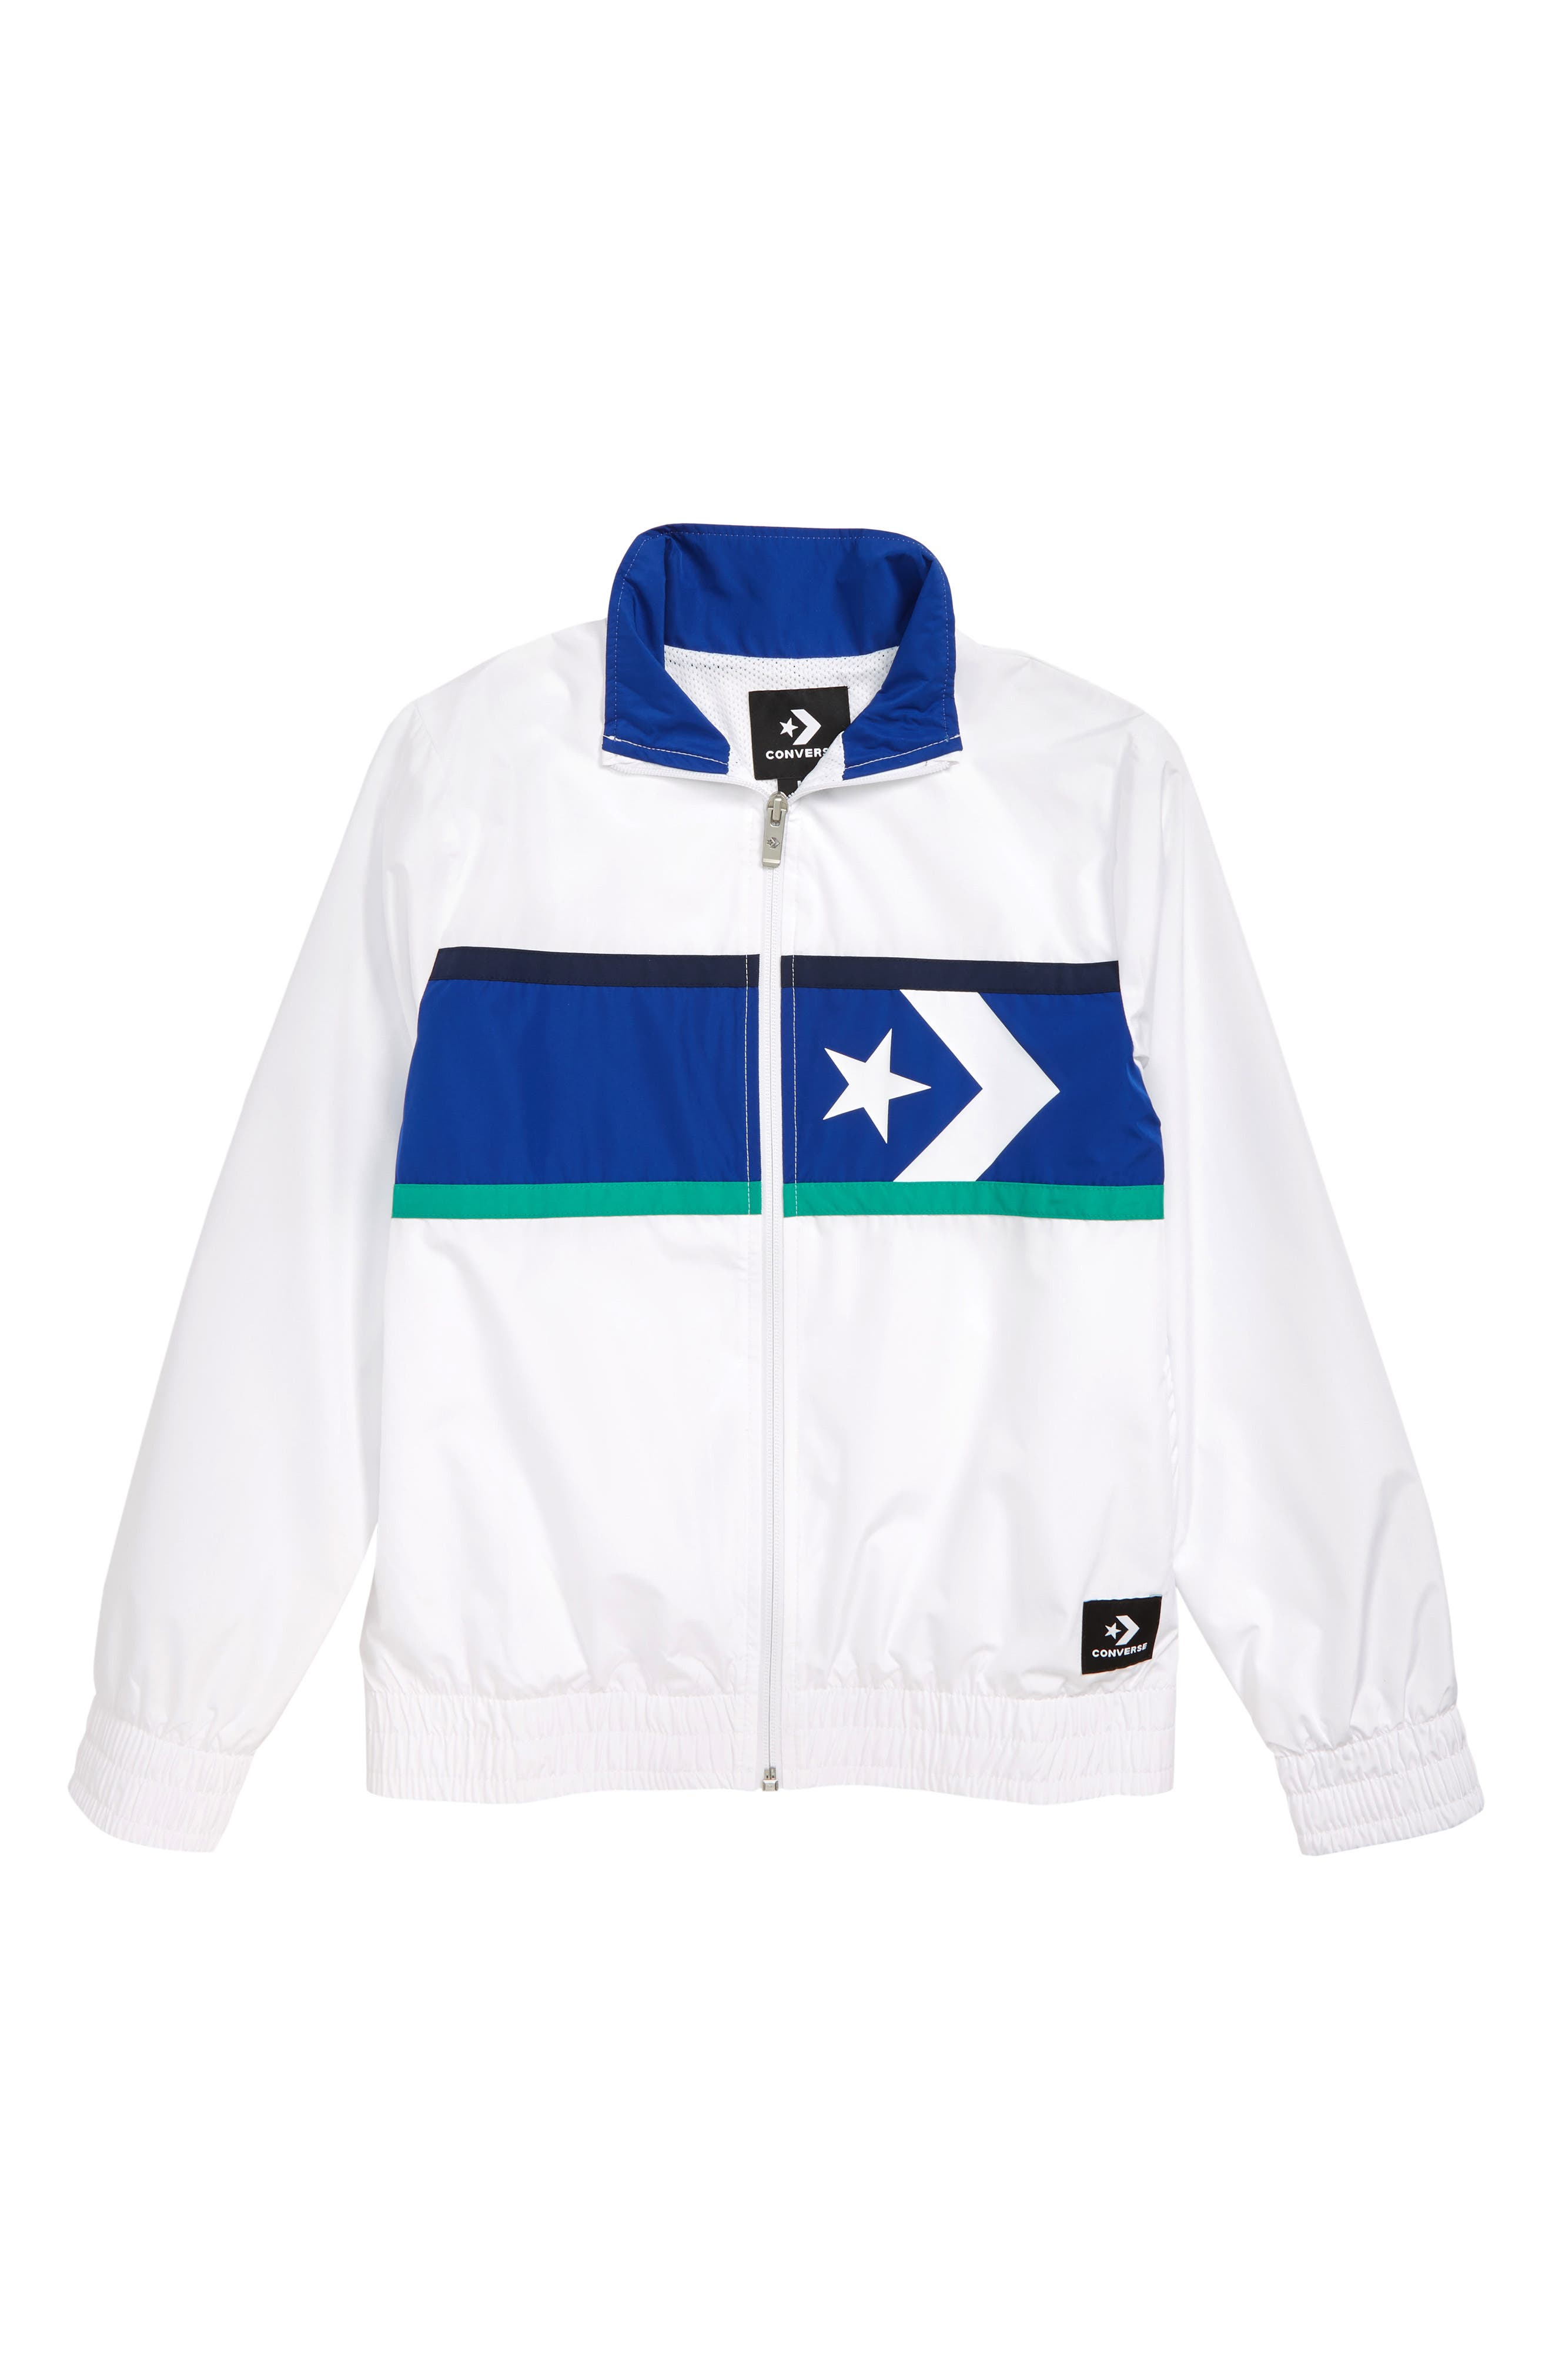 CONVERSE, Star Chevron Water Resistant Wind Jacket, Main thumbnail 1, color, WHITE